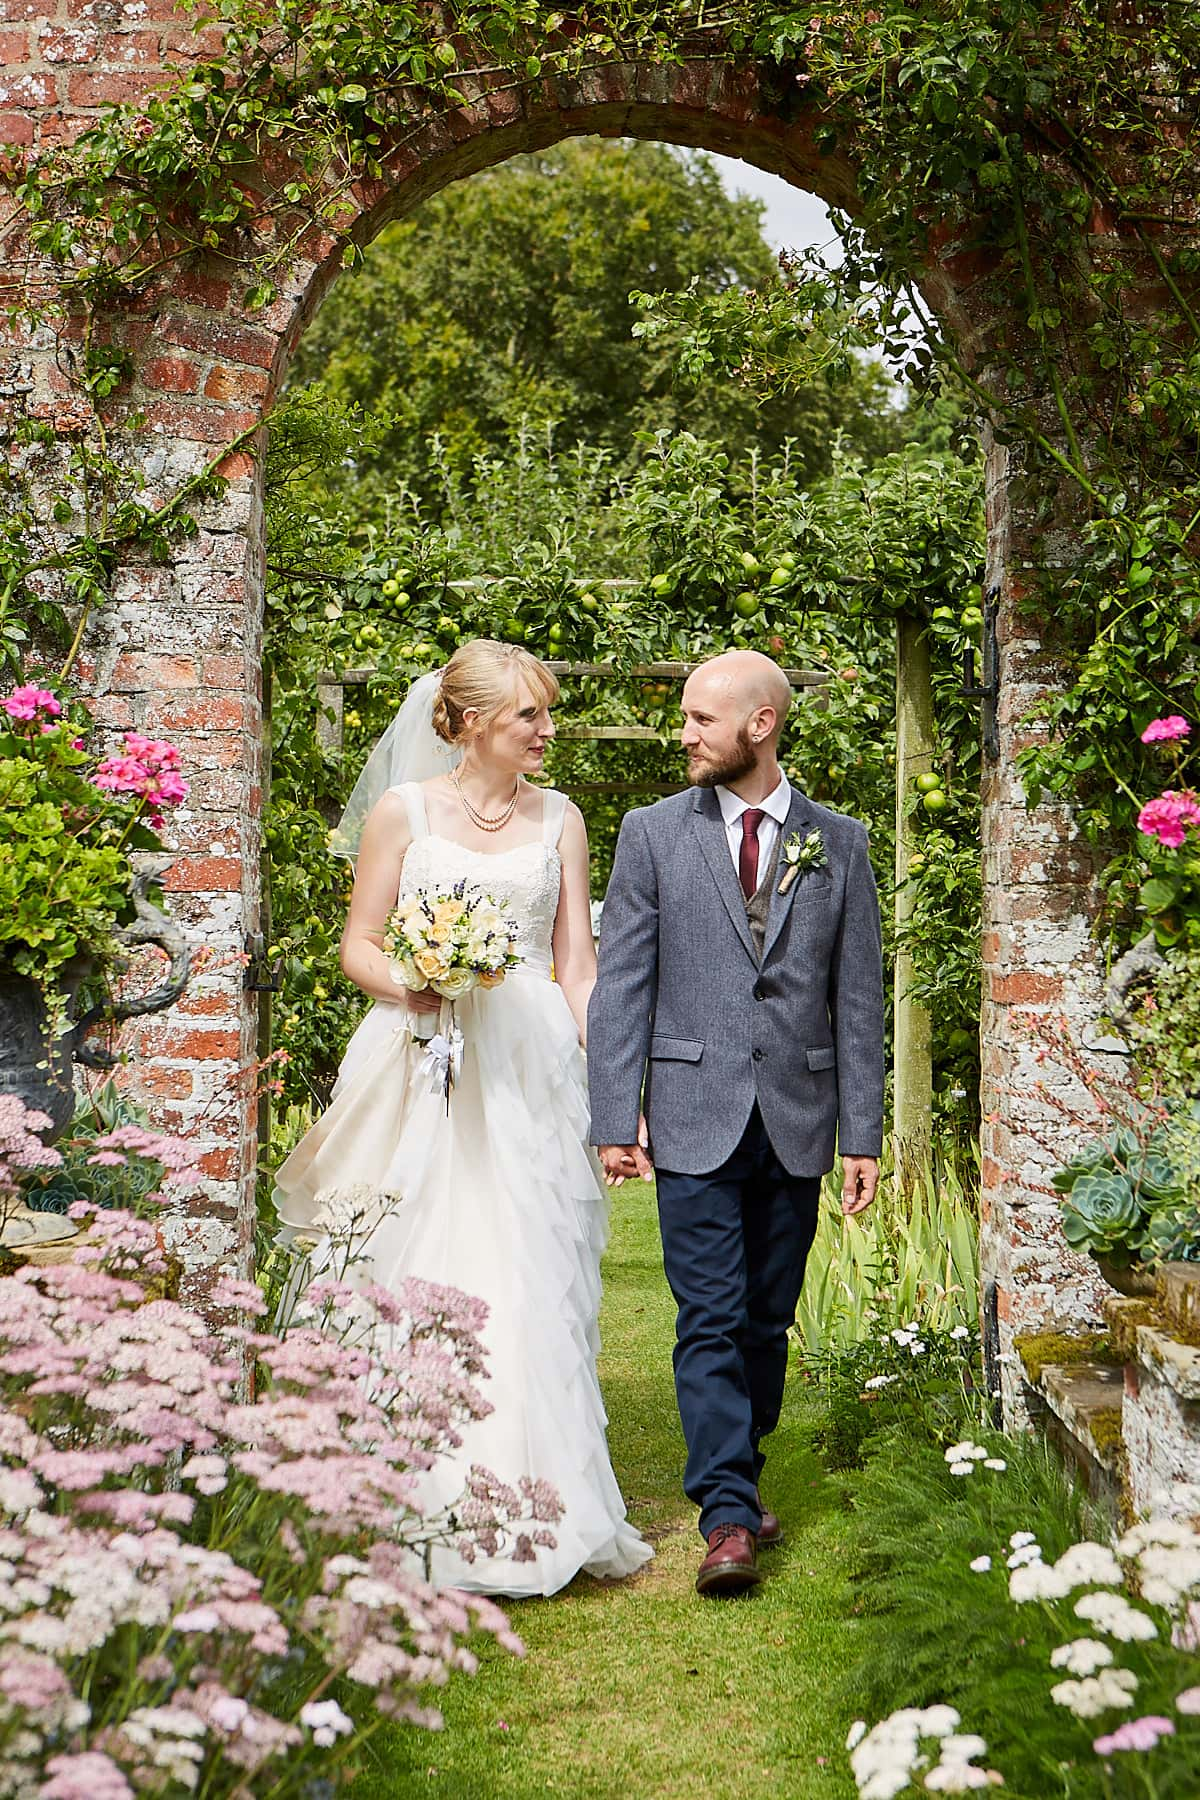 A couple walk through the gardens at Gunby Hall on their wedding day.